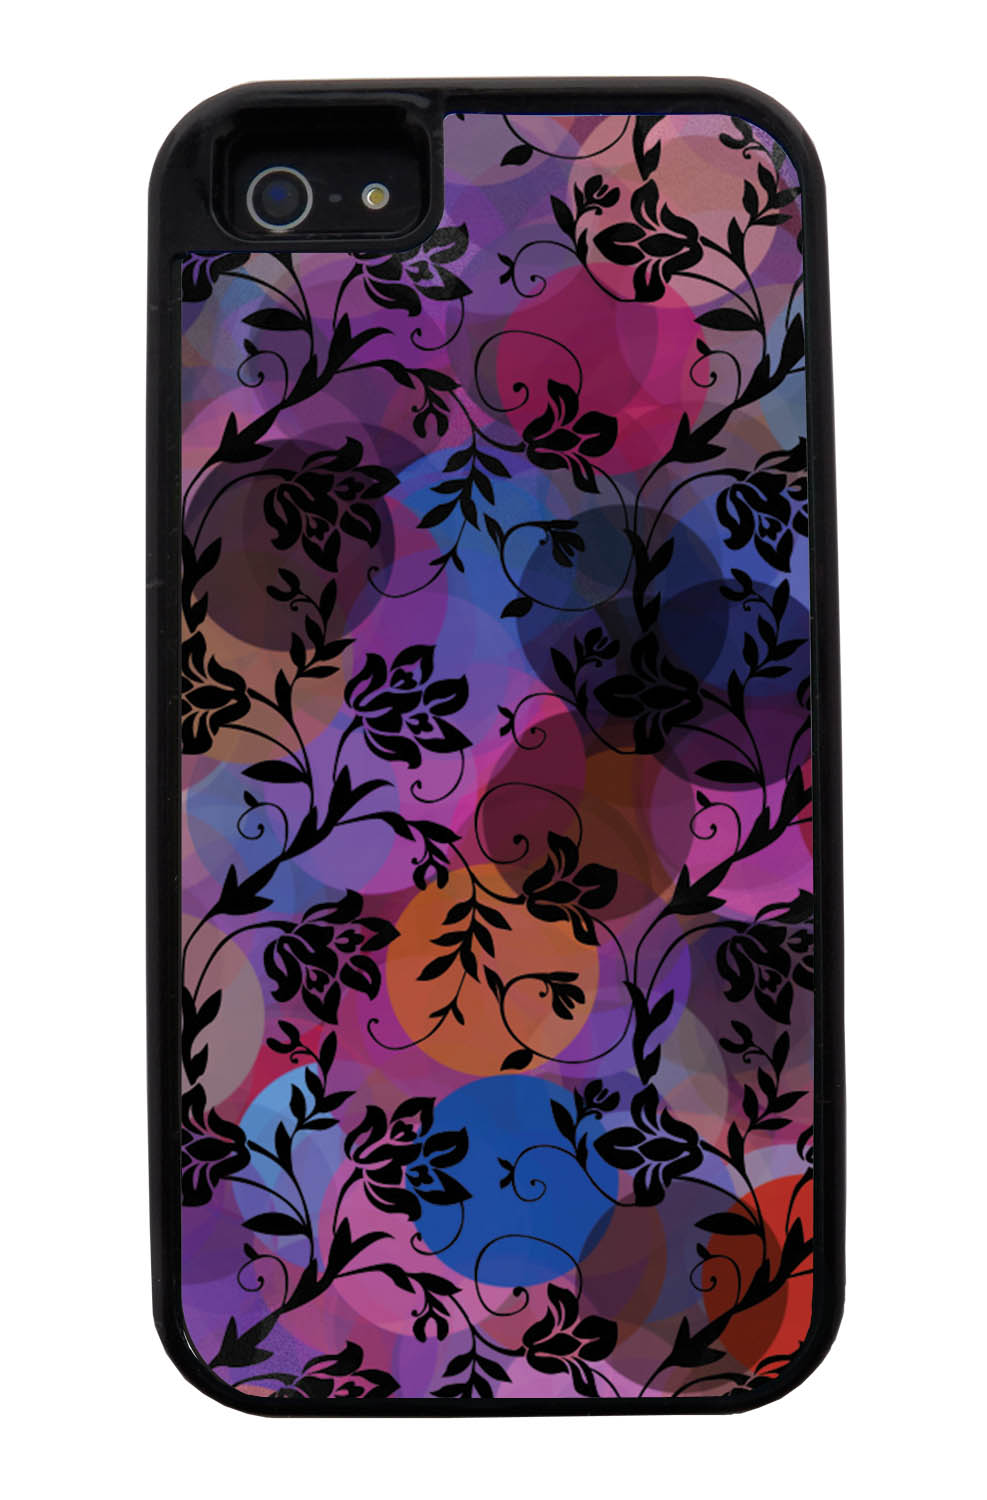 Apple iPhone 5 / 5S Flower Case - Black on Out-of-Focus Night Lights - Stencil Cutout - Black Tough Hybrid Case